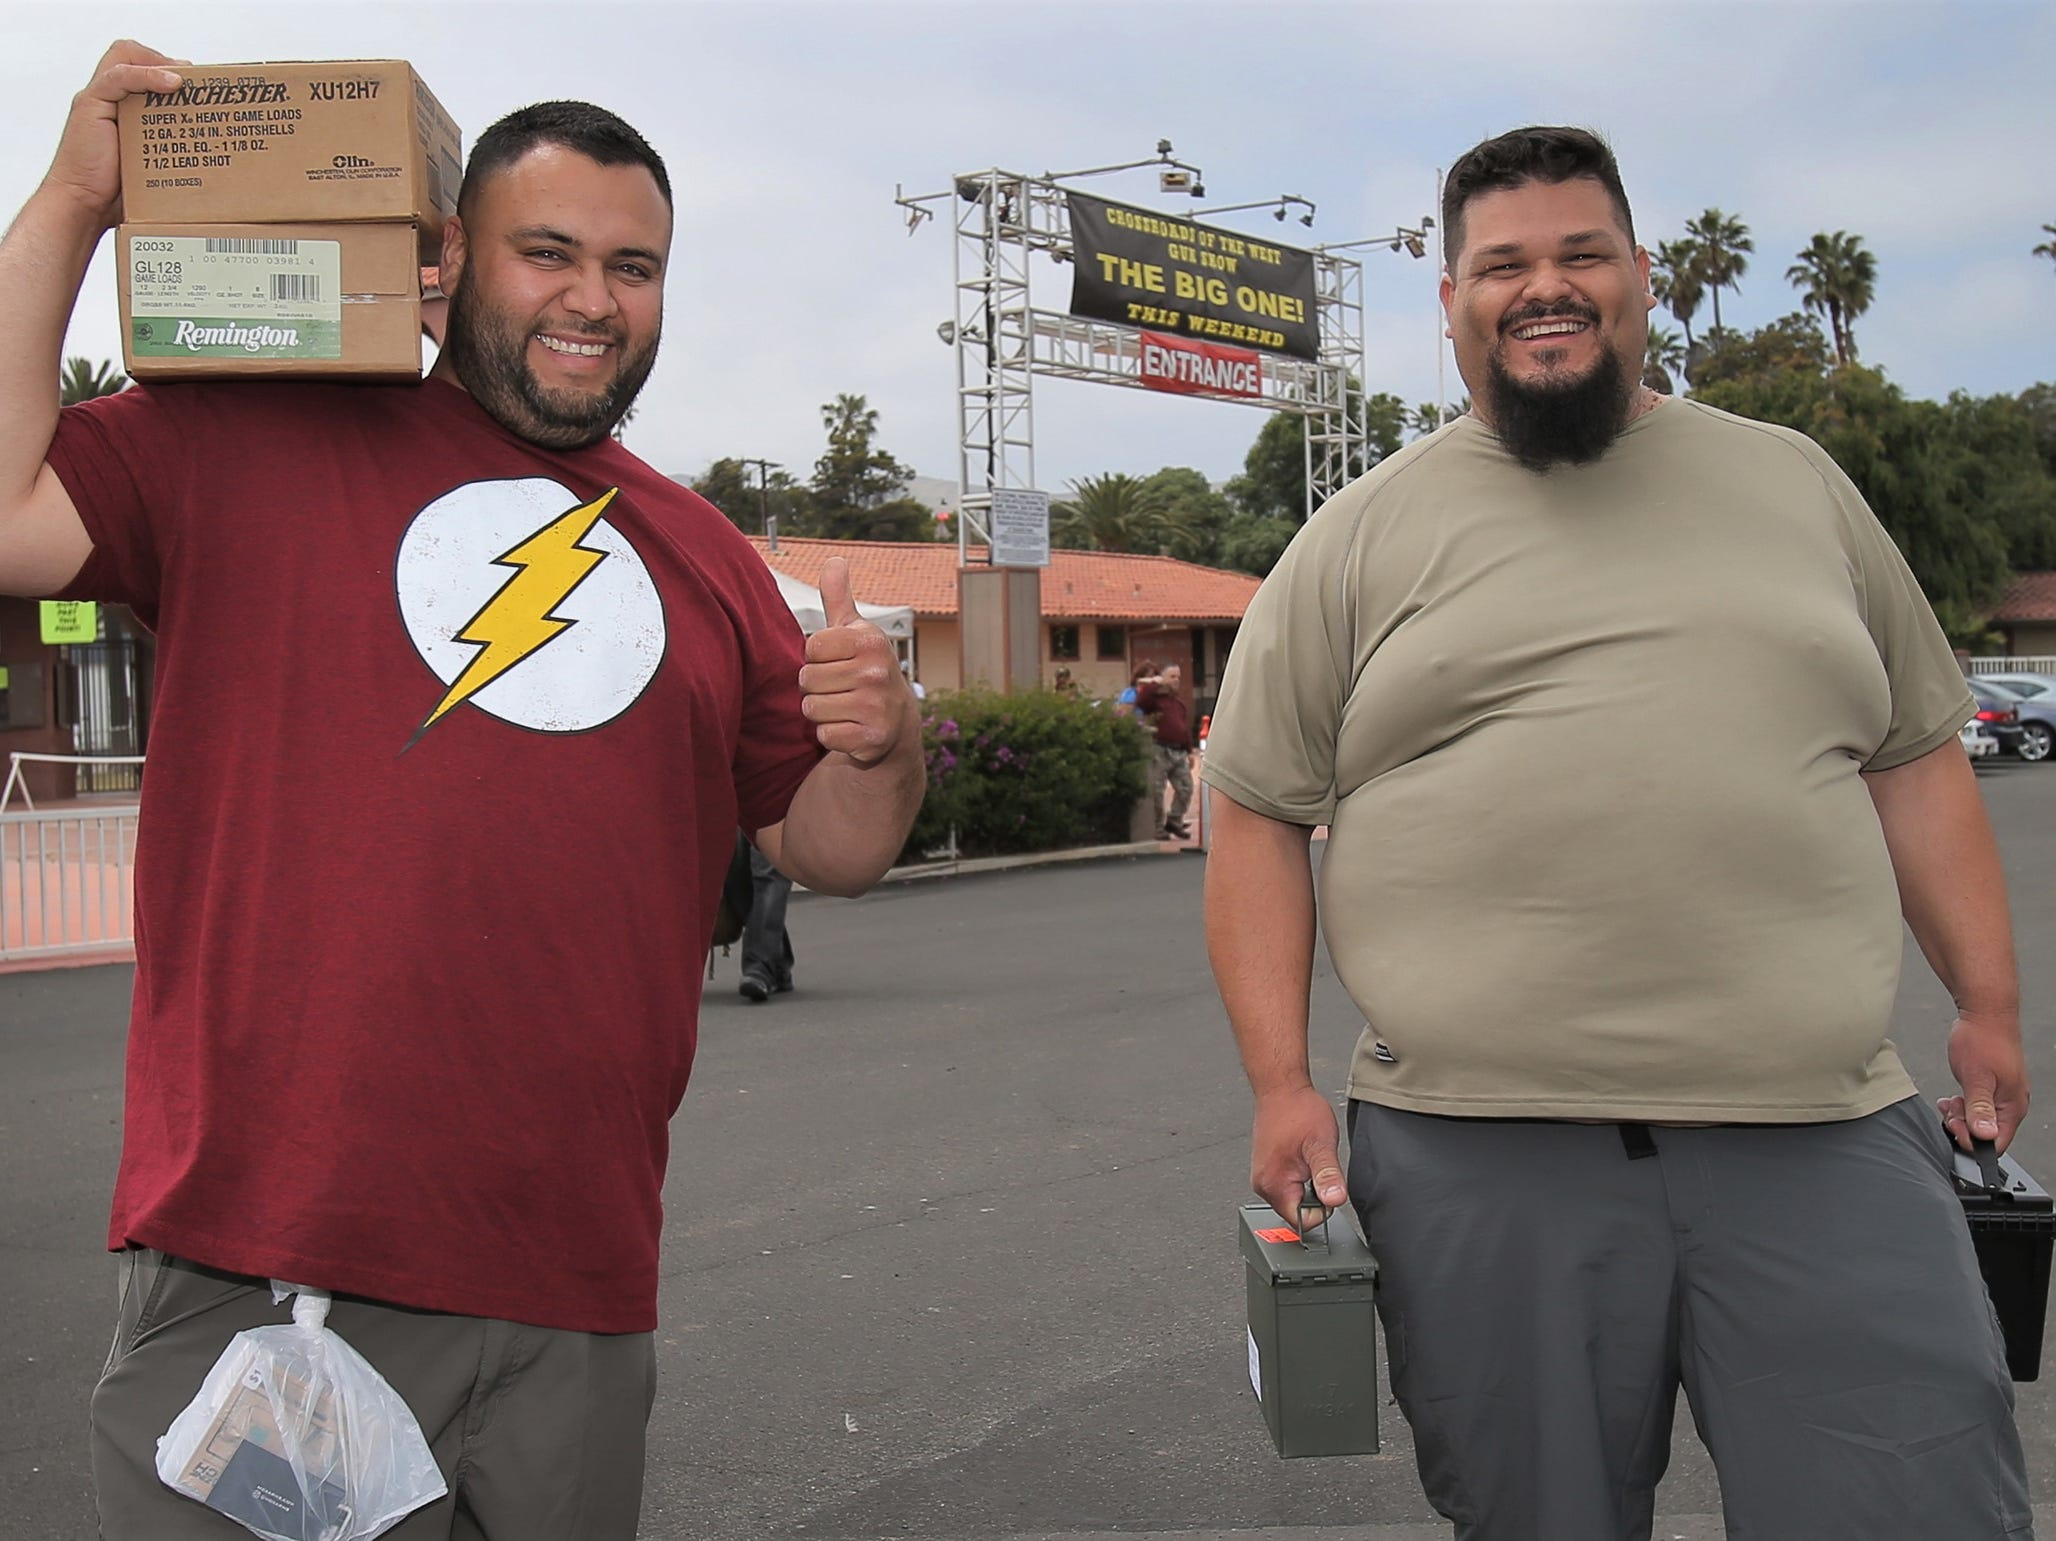 Ricardo Duran, left, and Ignacio Blanco, both of Los Angeles, leave the Crossroads of the West Gun Show that was held Saturday at the Ventura County Fairgrounds. Both hope the show doesn't go away but if it does, they will travel to other cities if they have to.